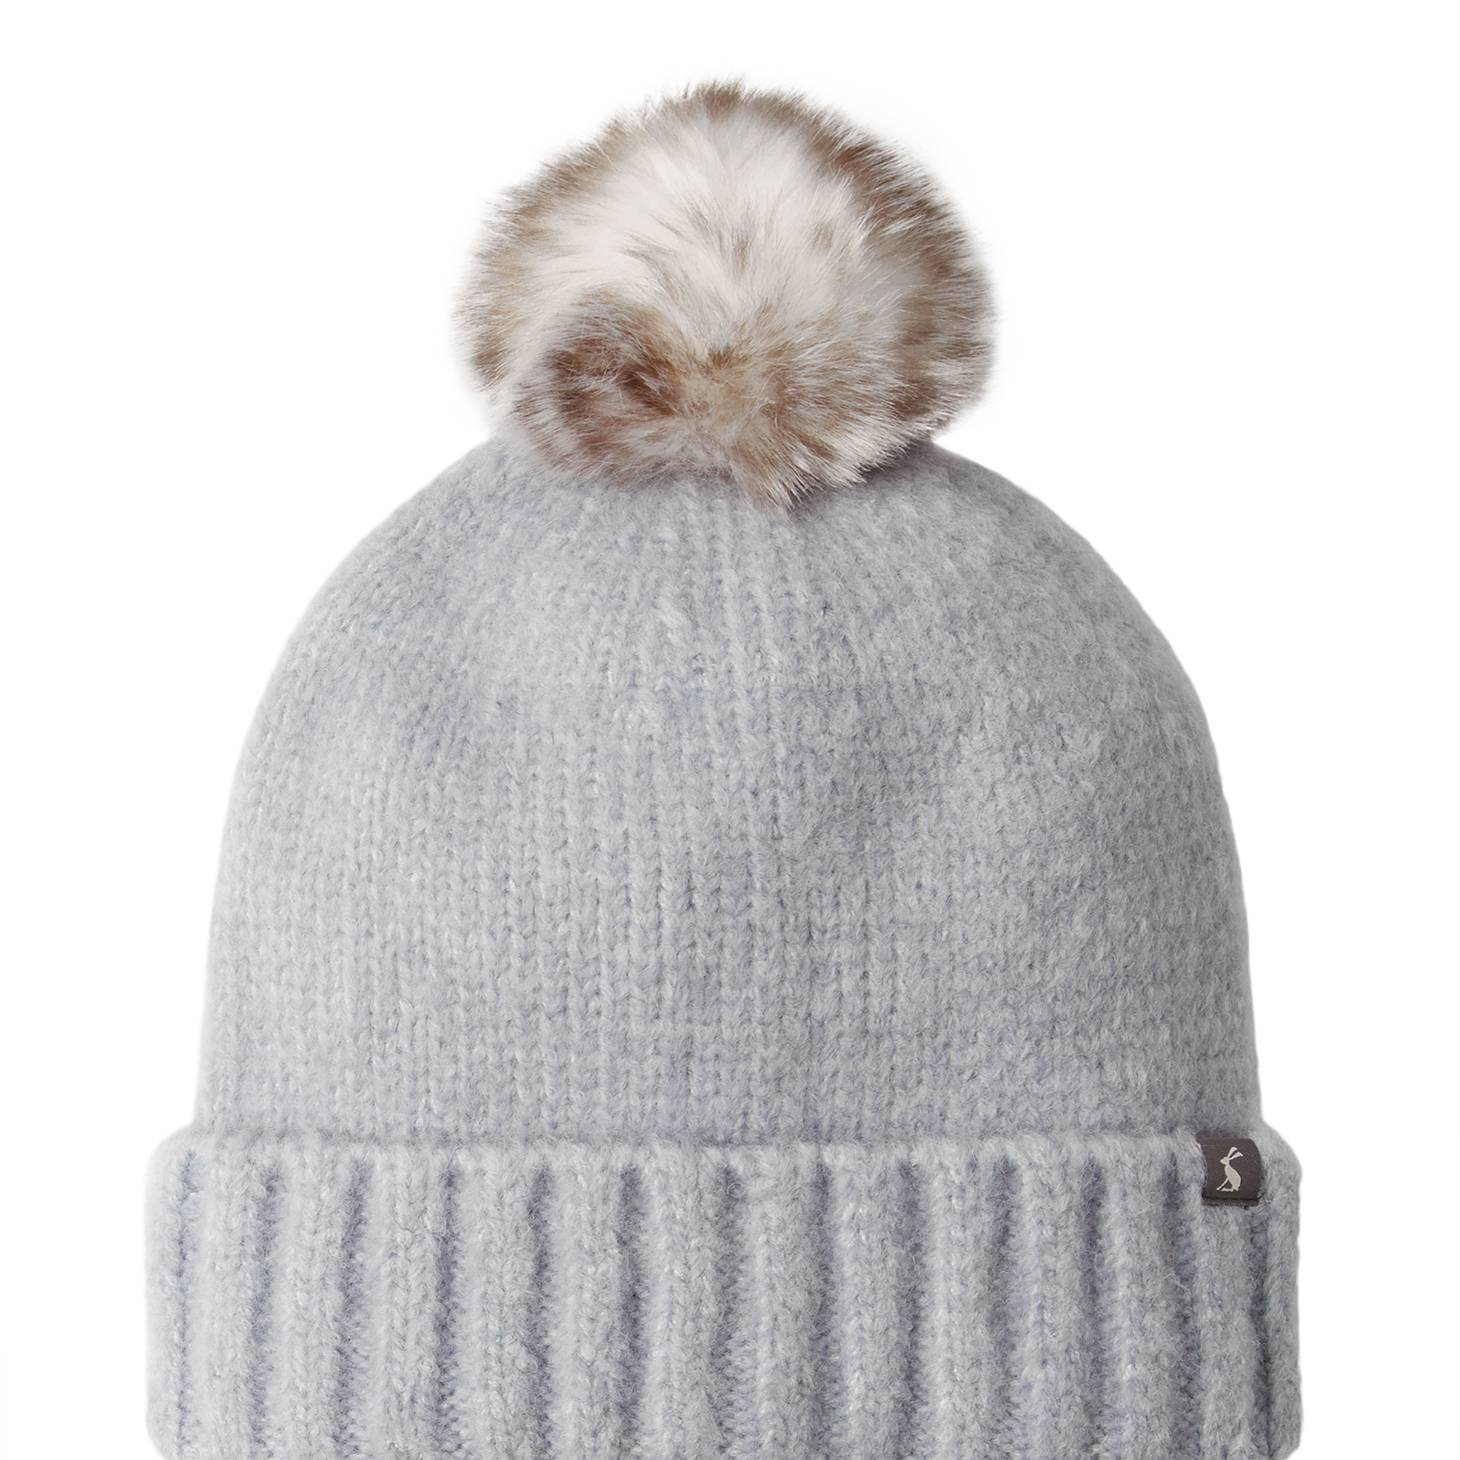 Joules Ladies Snugwell Hat Heavyweight Boucle Hat - Blue